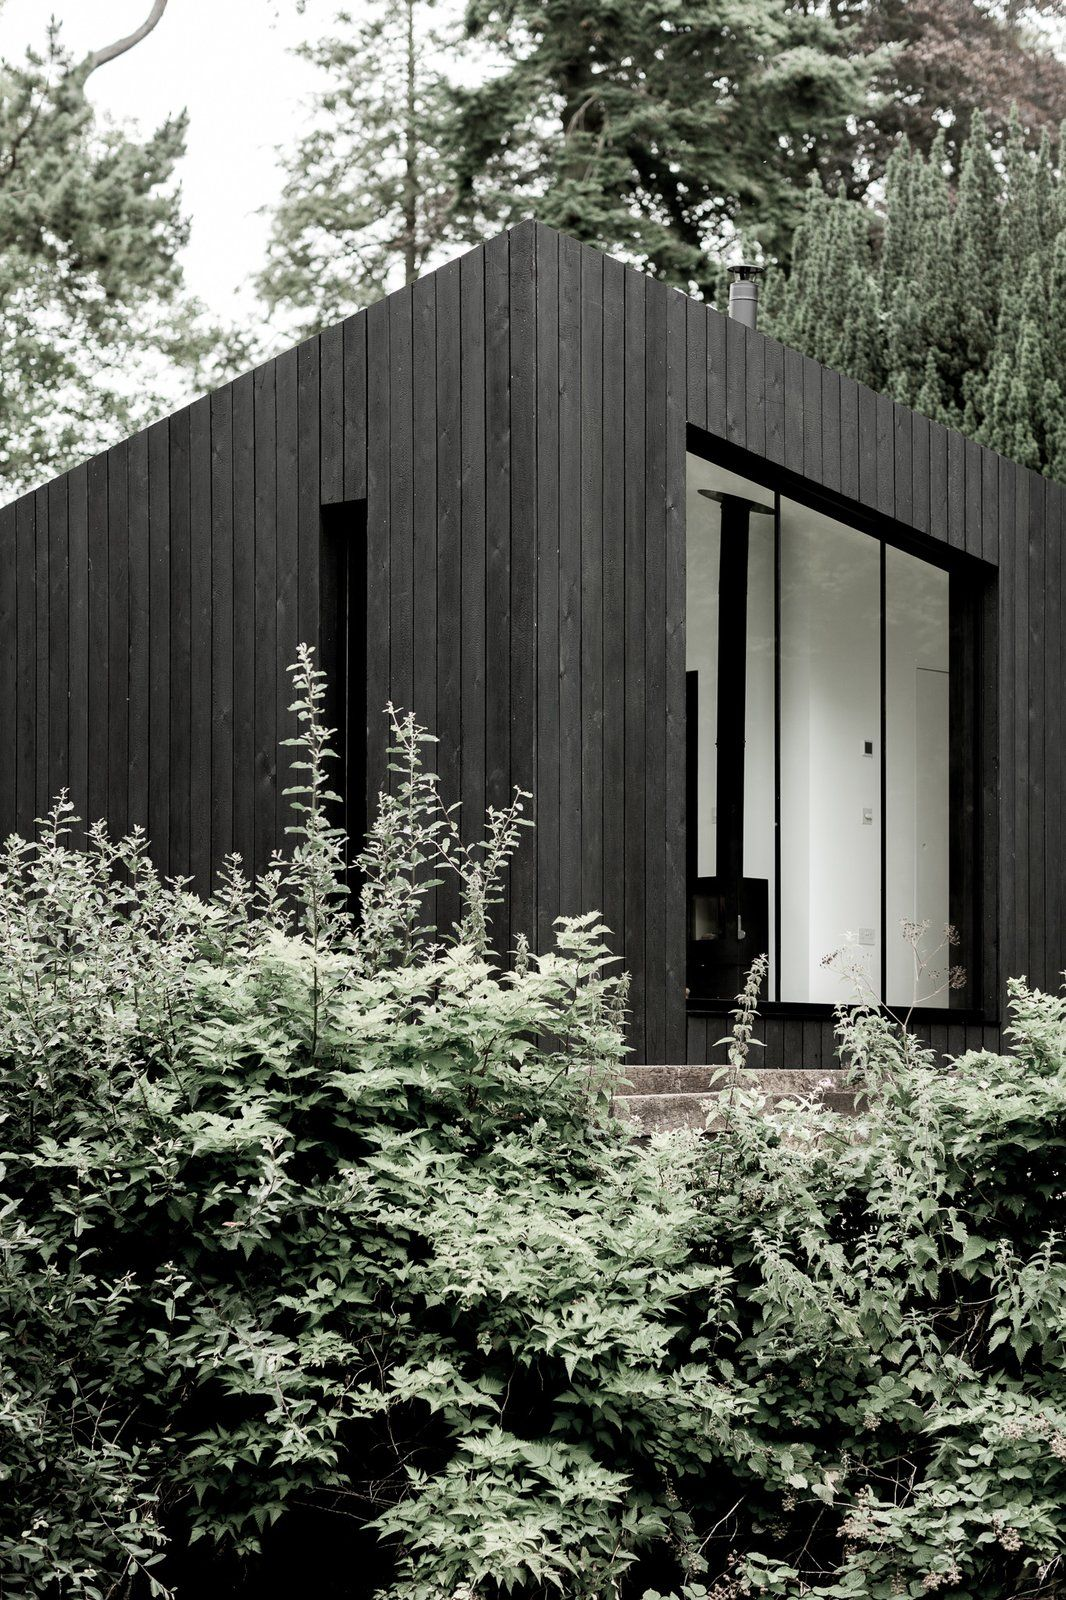 These Sleek Prefab Cabins Radiate Scandinavian Style Prefabricated Cabins Prefab Cabins Prefabricated Houses